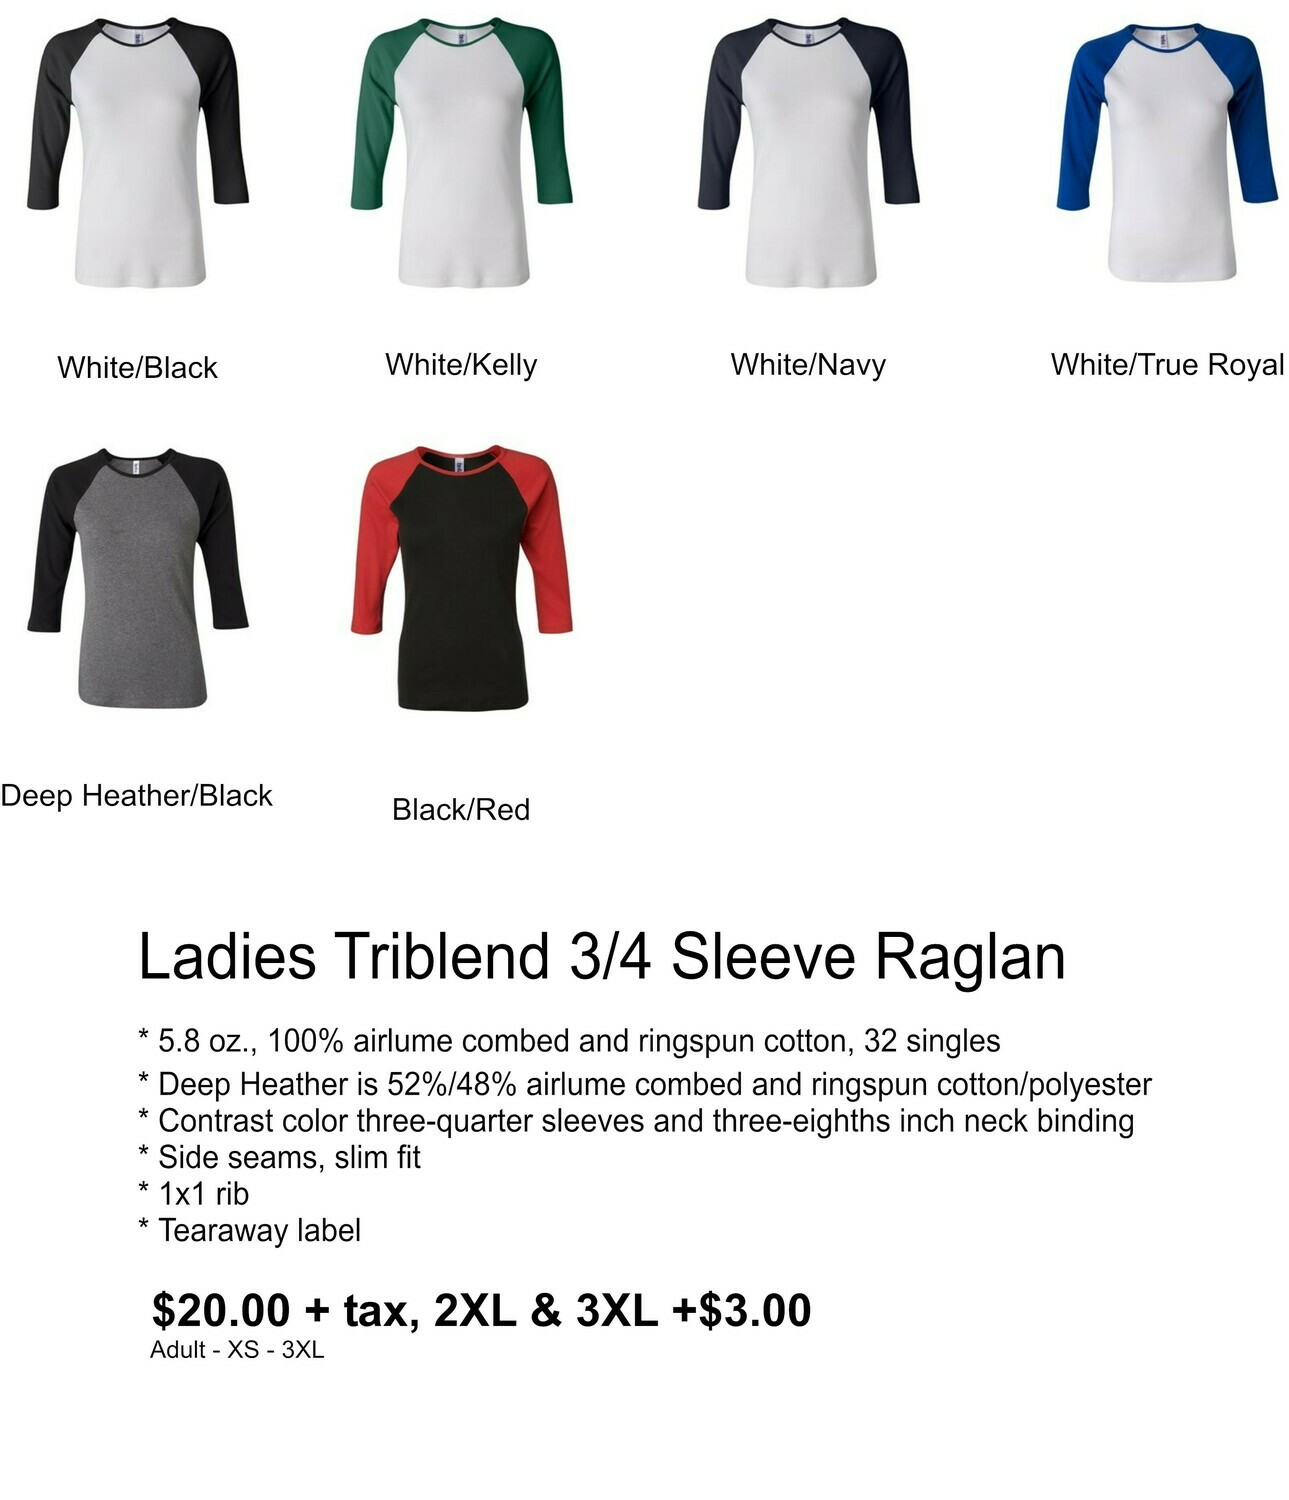 Ladies TriBlend 3/4 Sleeve Raglan